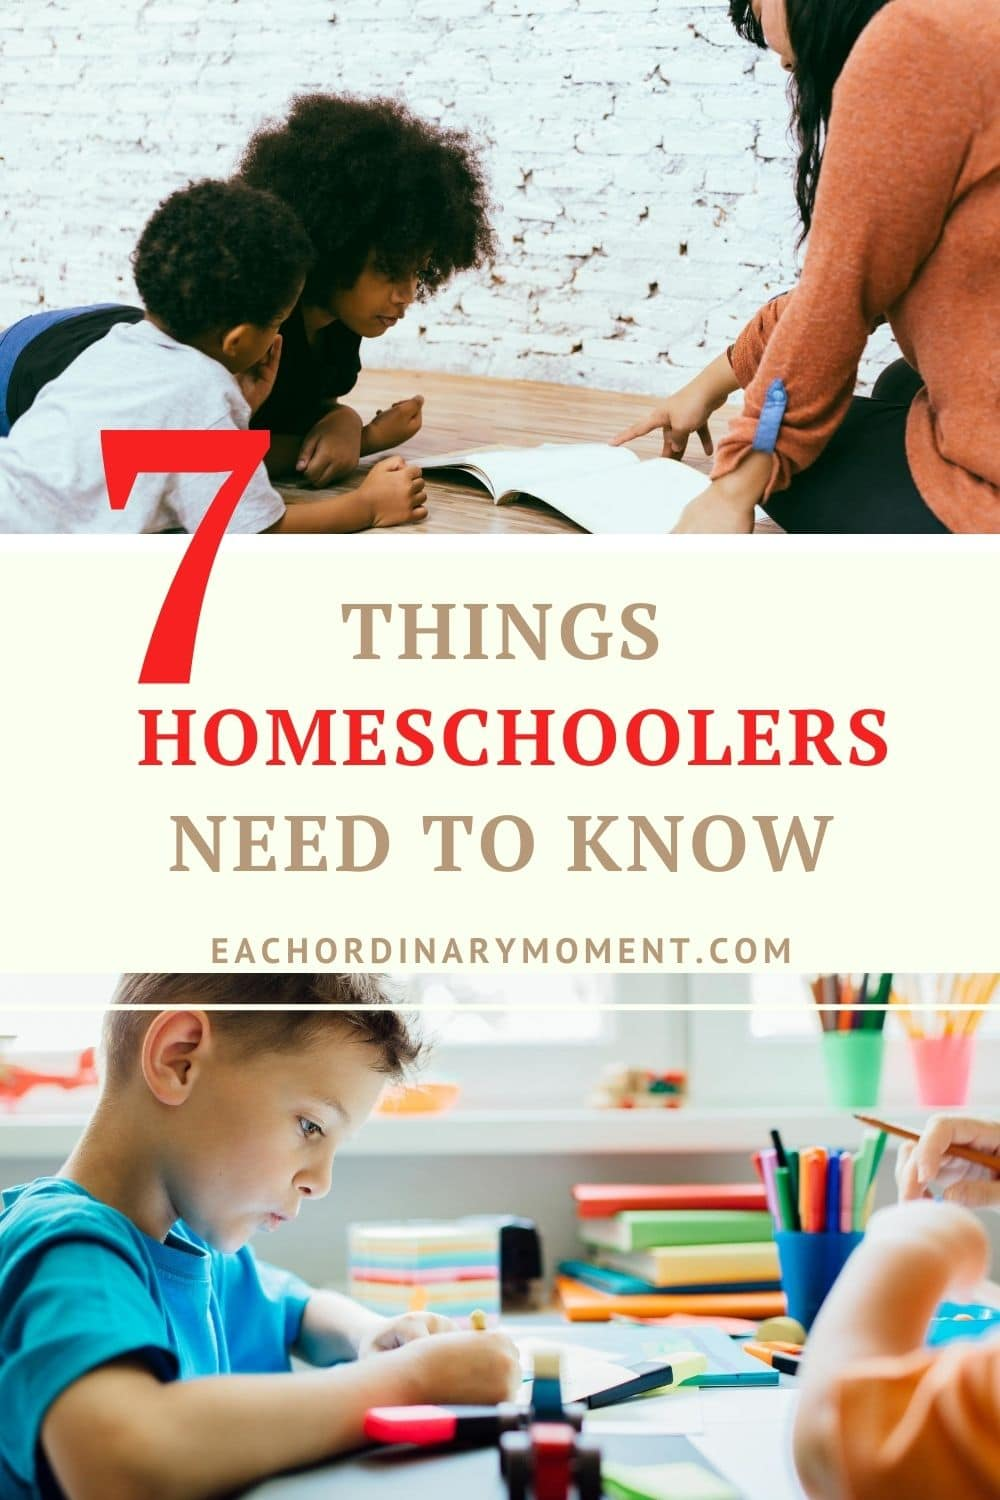 Things Homeschoolers Need to Know